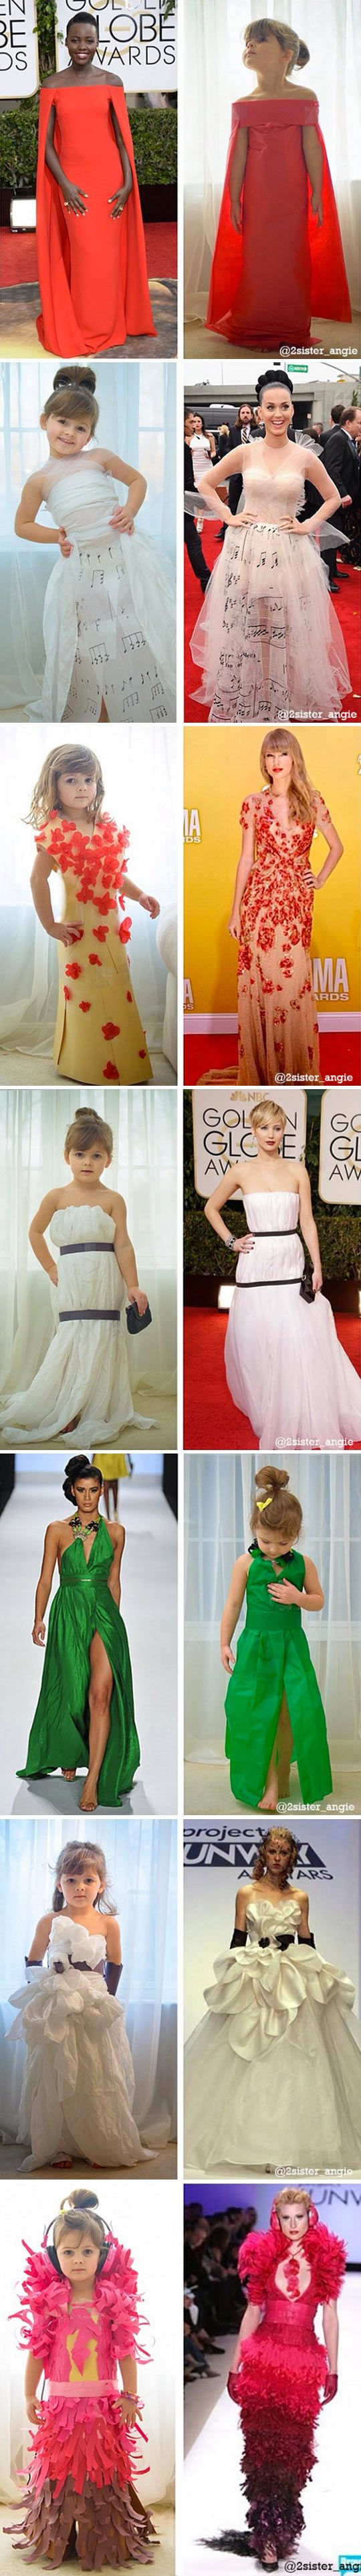 Mother Makes Paper Dresses For Her 4-Year-Old Daughter<<<the girl looks great in the dresses though